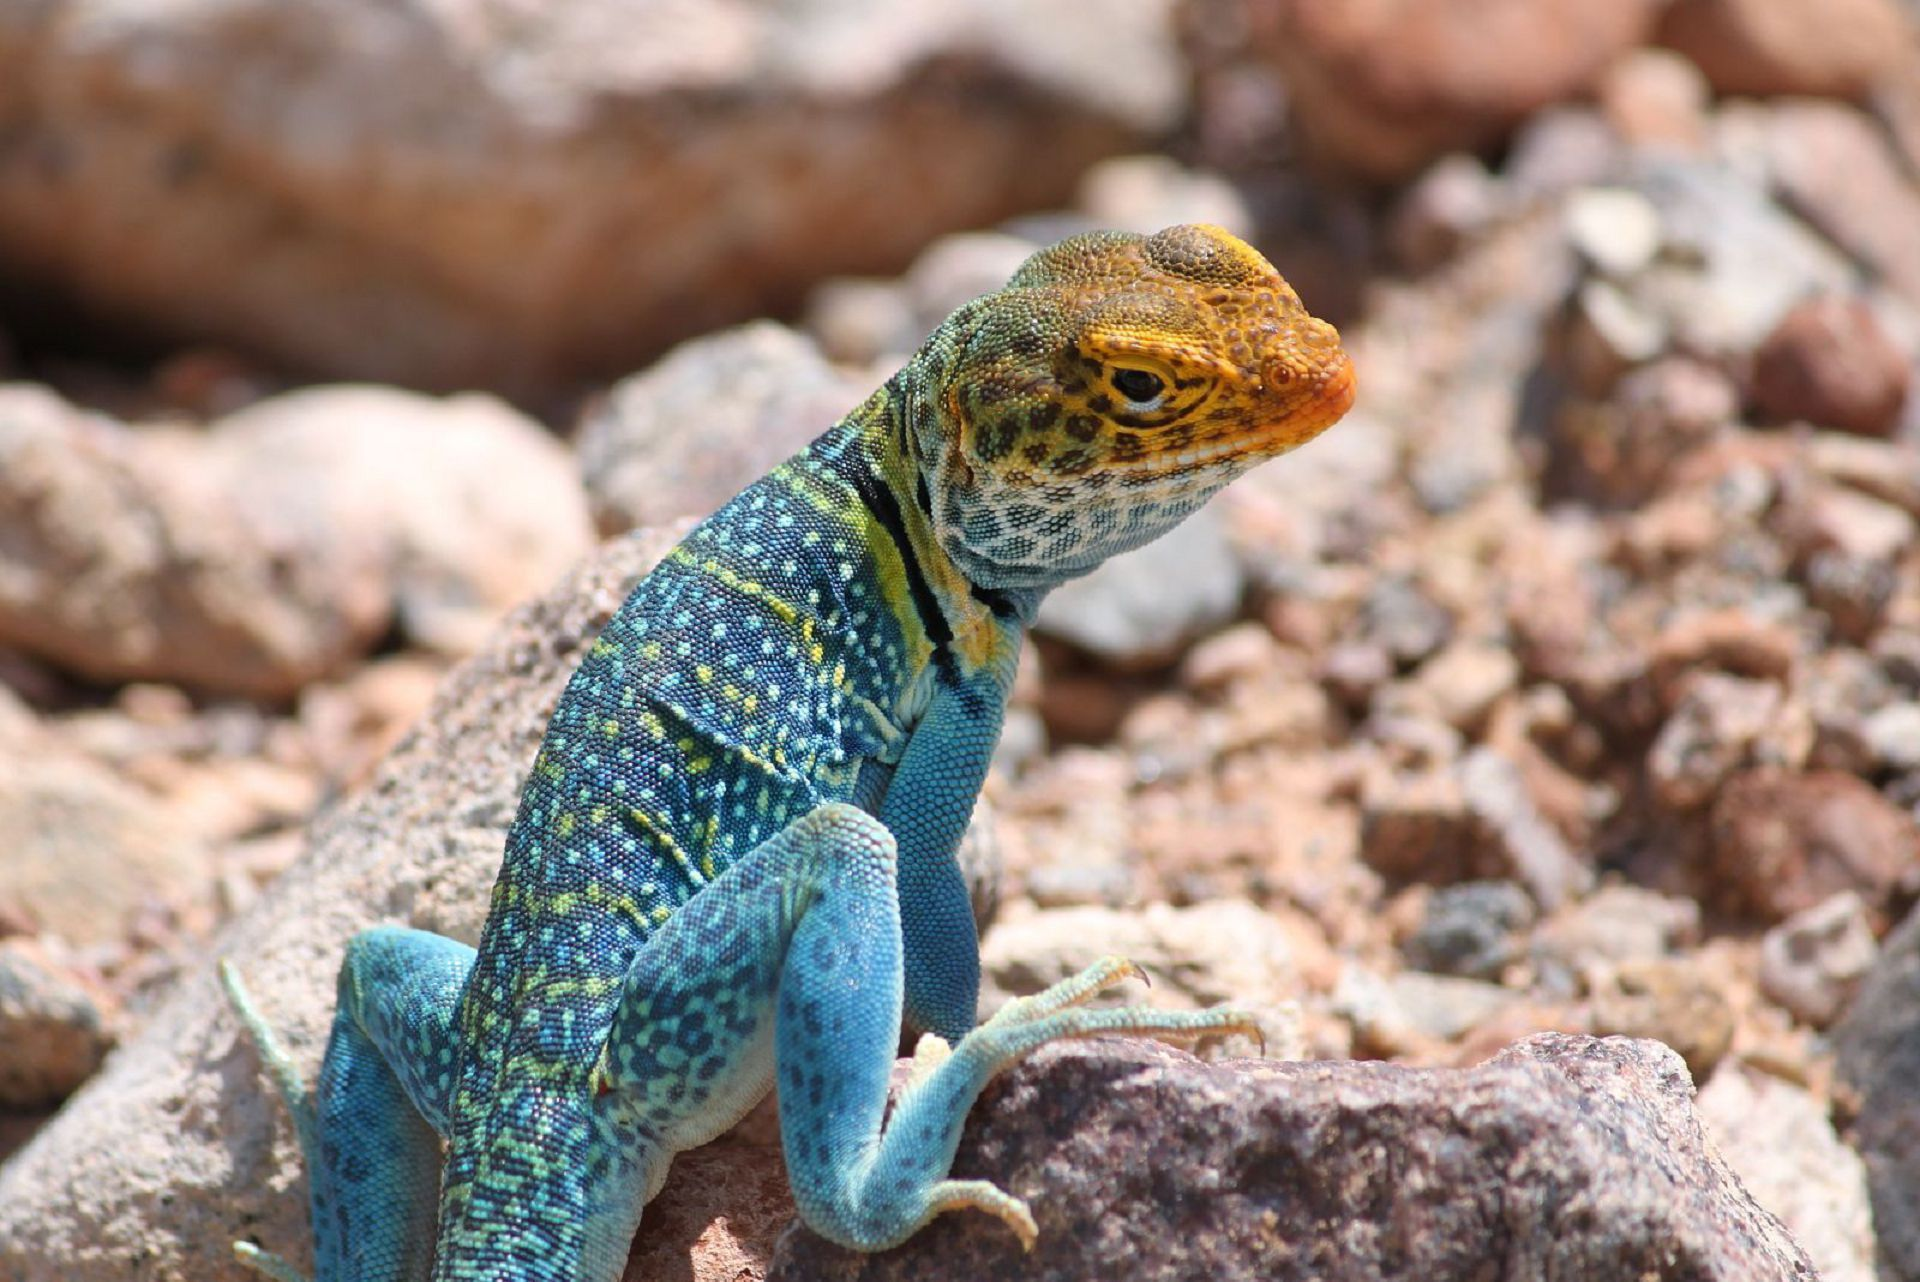 """lizard essay Blue tongue lizard ectotherms are """"cold-blooded"""" animals such as reptiles, amphibians, insects, fish and worm these animals rely on the outside environment for their body heat as they do not generate heat internally like a mammal or bird."""